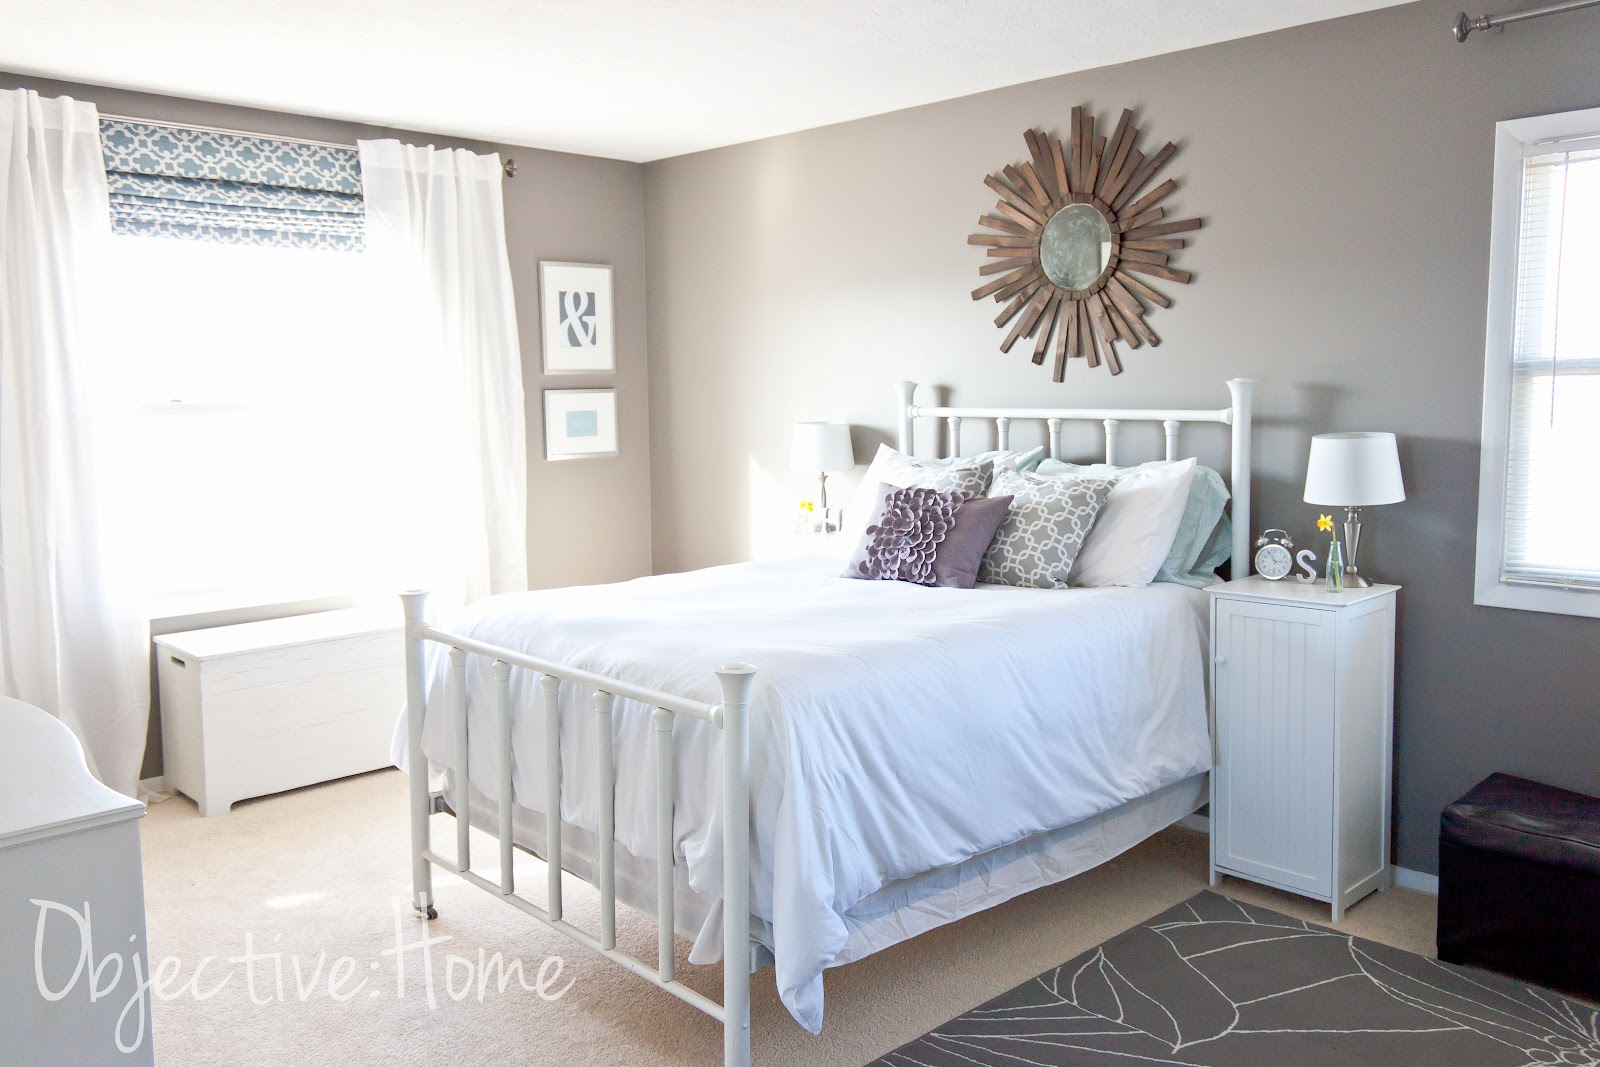 diy master bedroom wall decor. Master Bedroom Wall Happenings (Free Printables!) Diy Decor